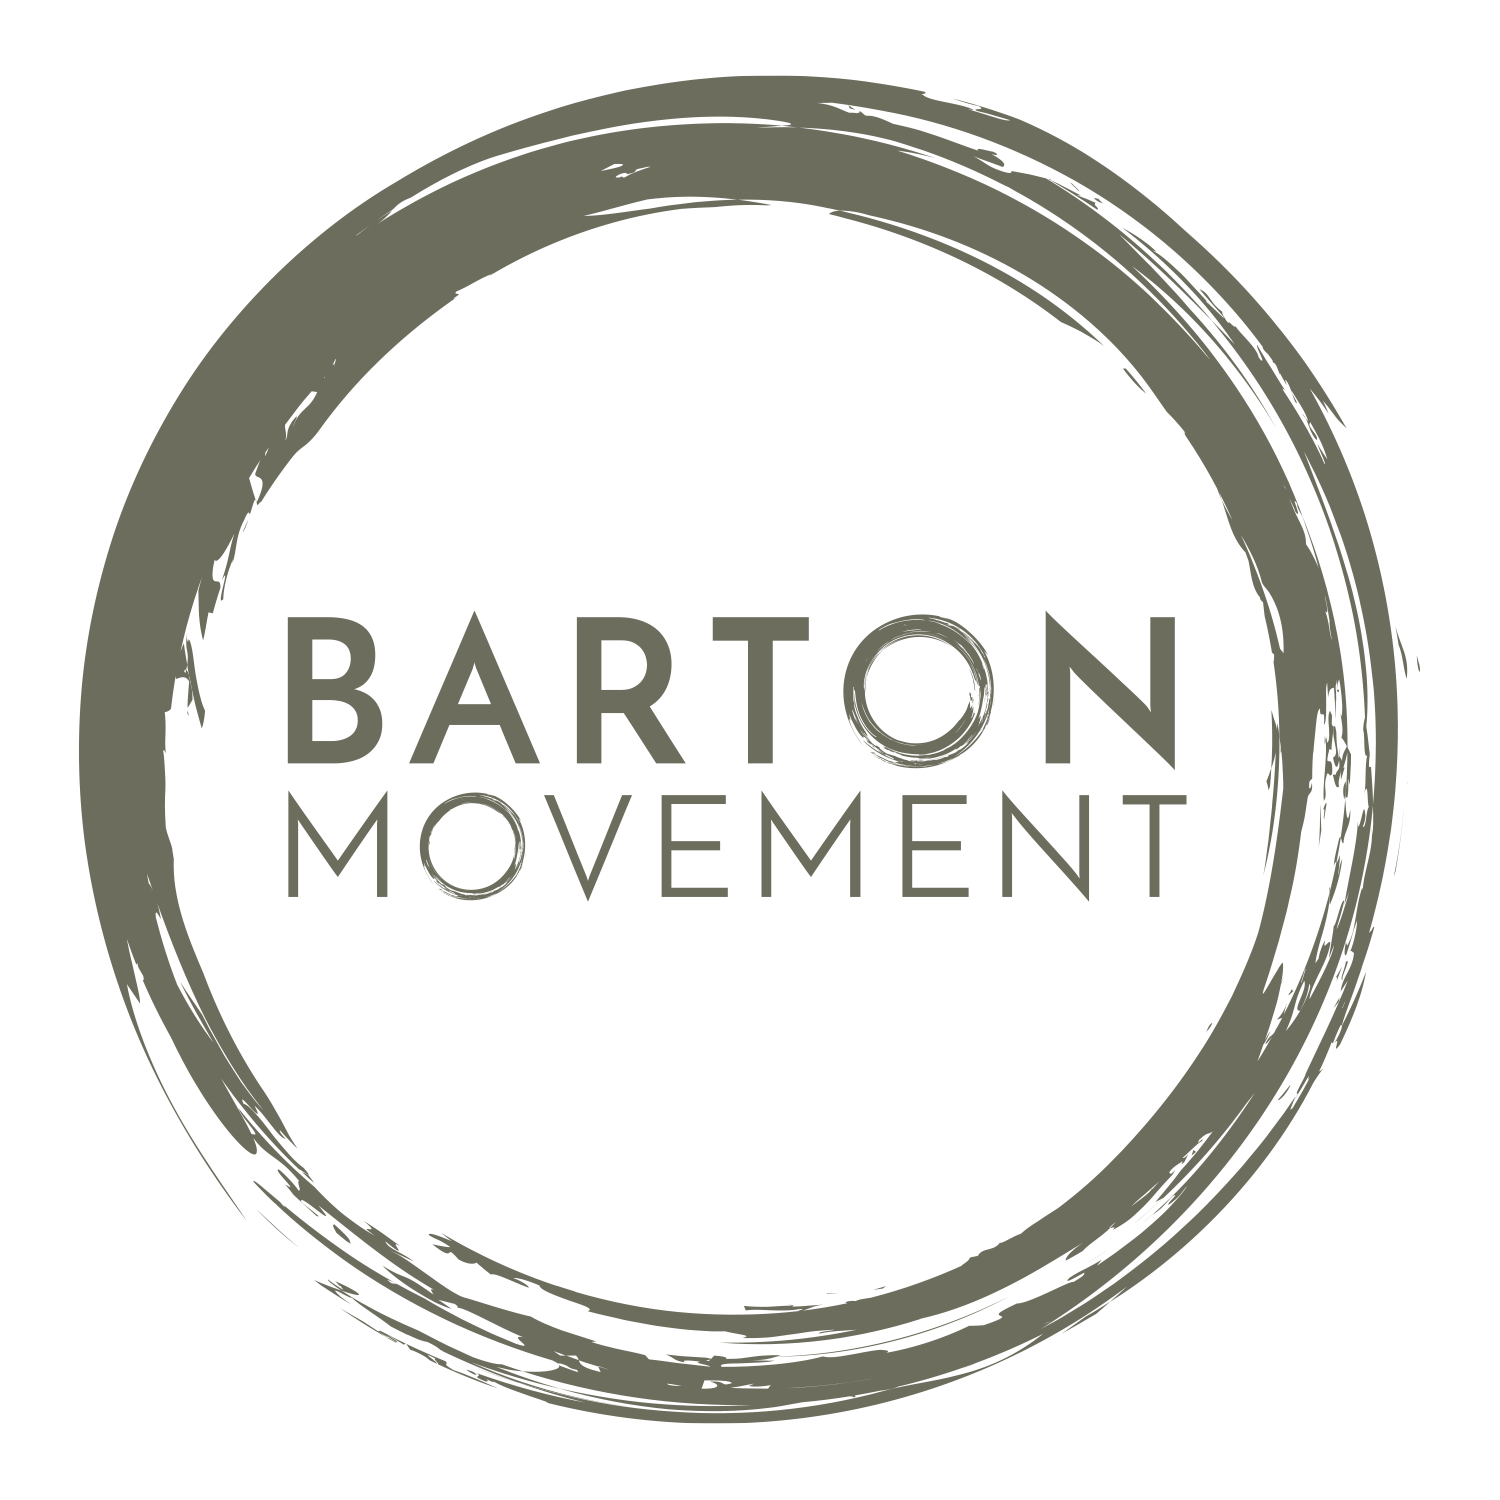 BARTON MOVEMENT